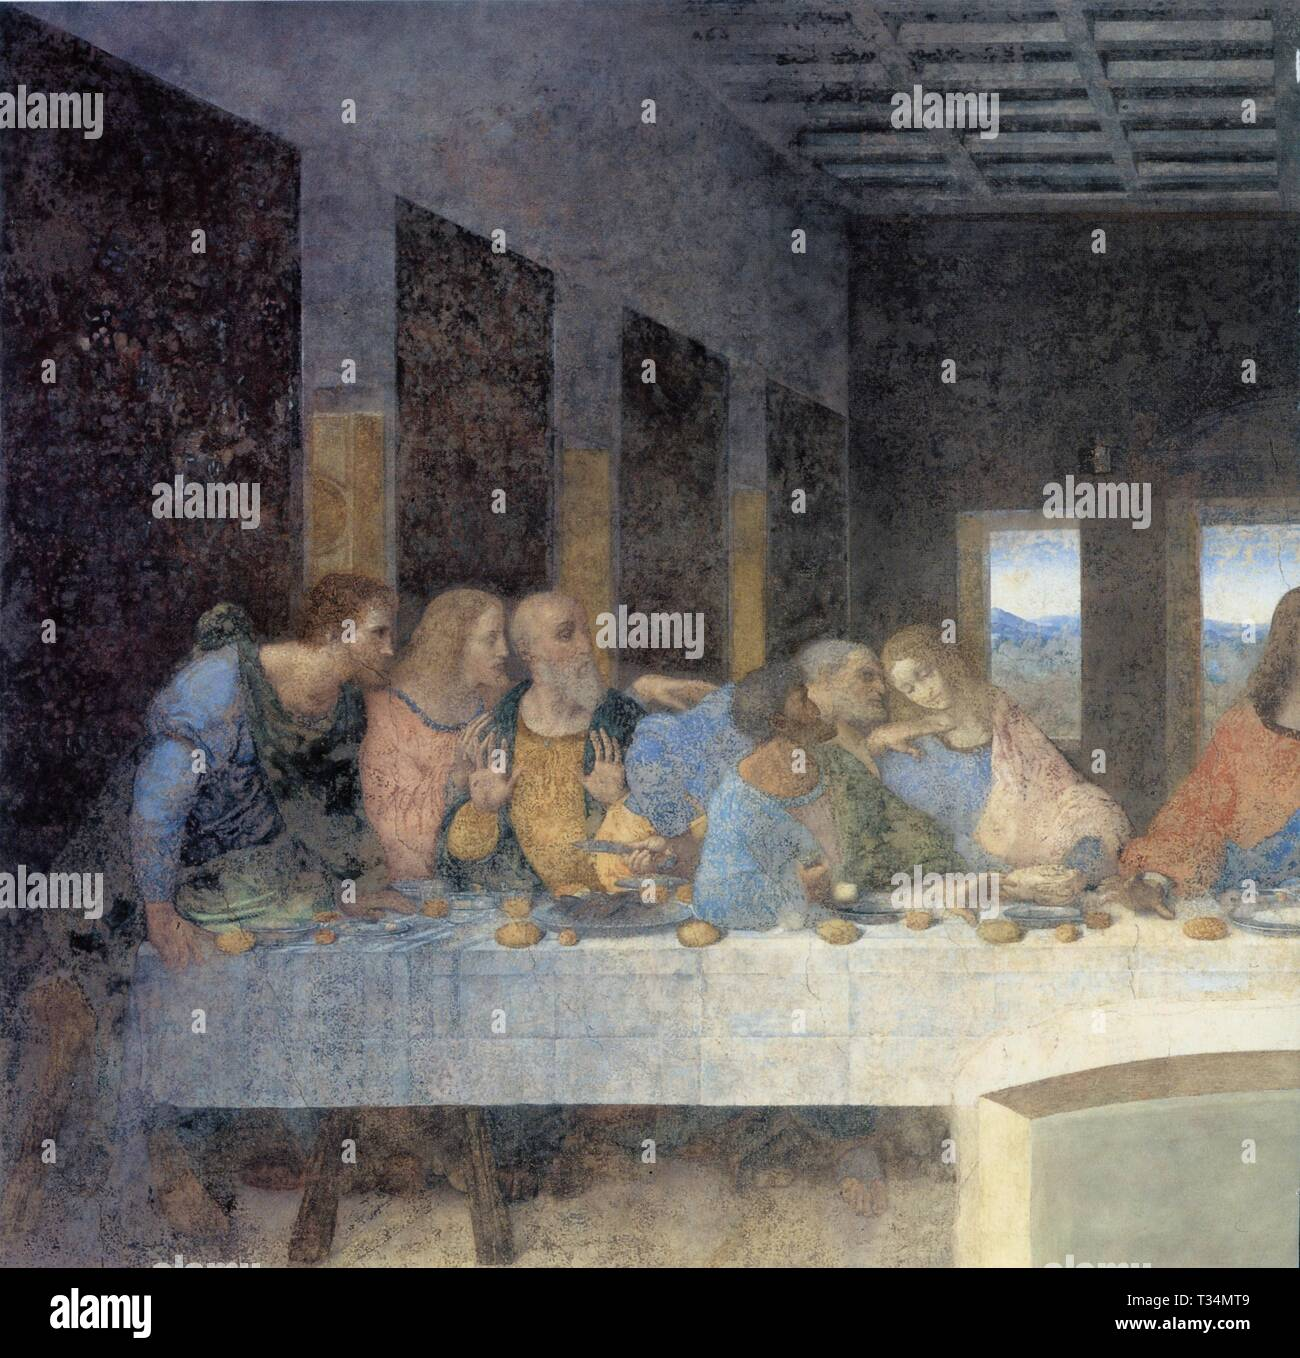 .LEONARDO DA VINCI.THE LAST SUPPER.DETAIL.1495-1498.OIL AND TEMPERA ON PLASTER.460CM X 880 CM. - Stock Image